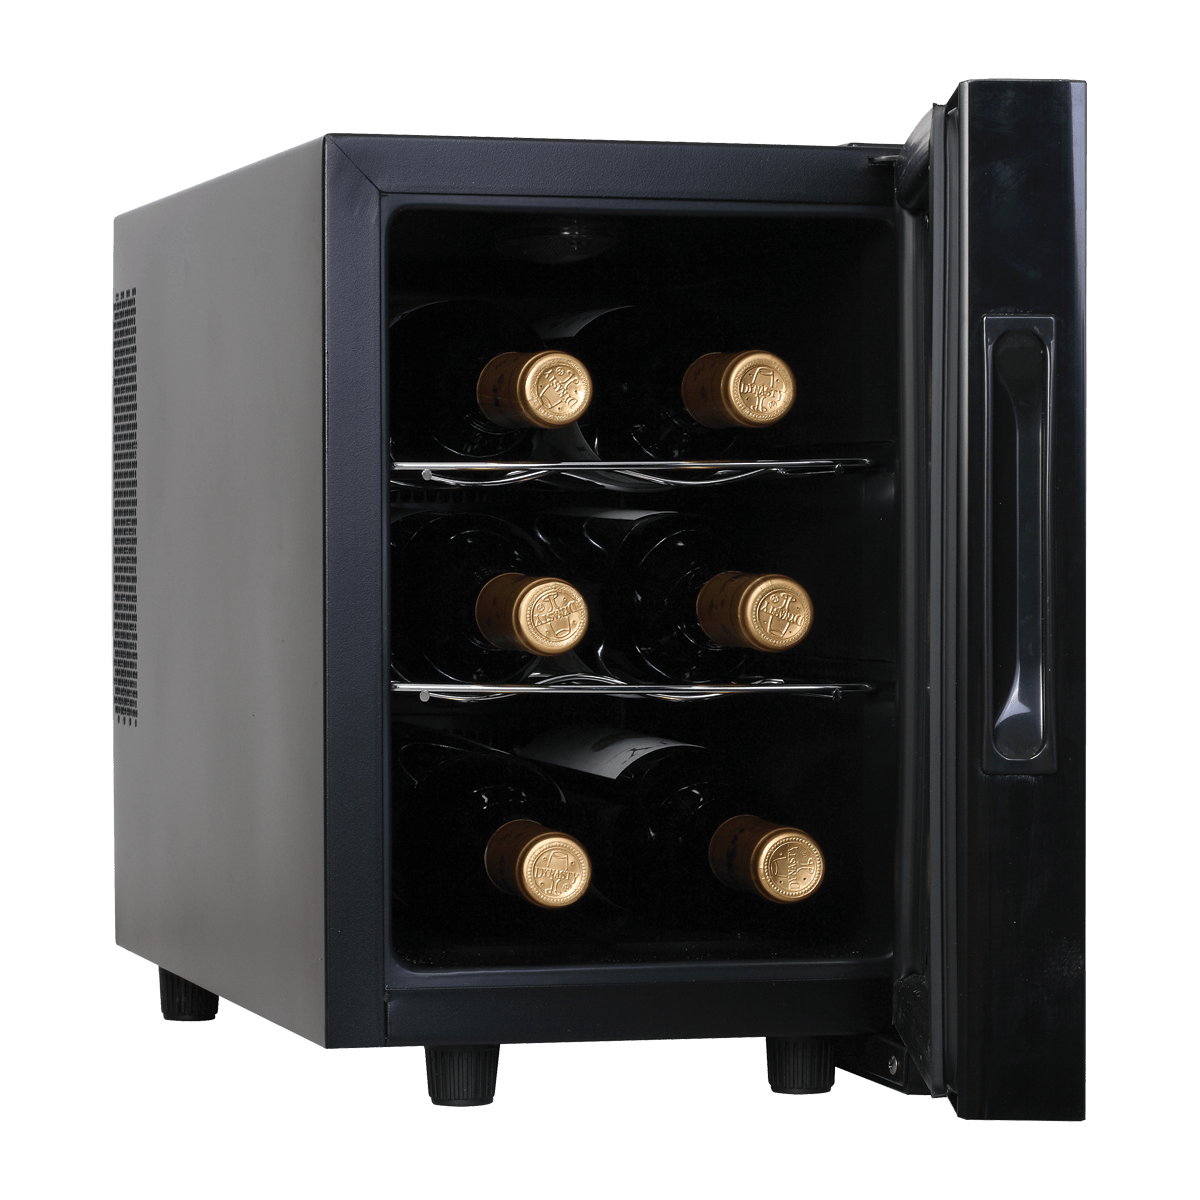 bottle cooler subcold about s led itm small mini black fridge details wine countertop